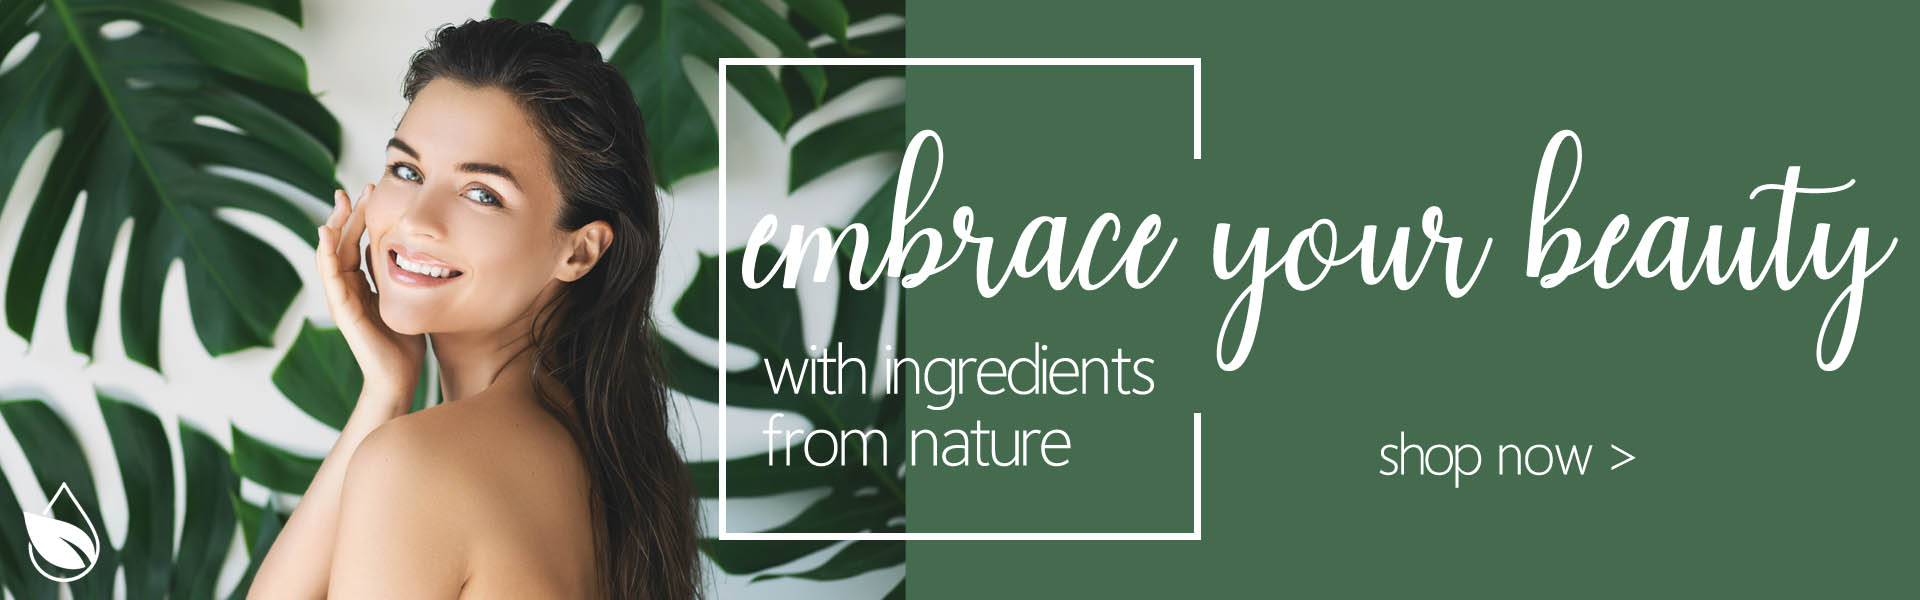 Embrace your beauty with ingredients from nature